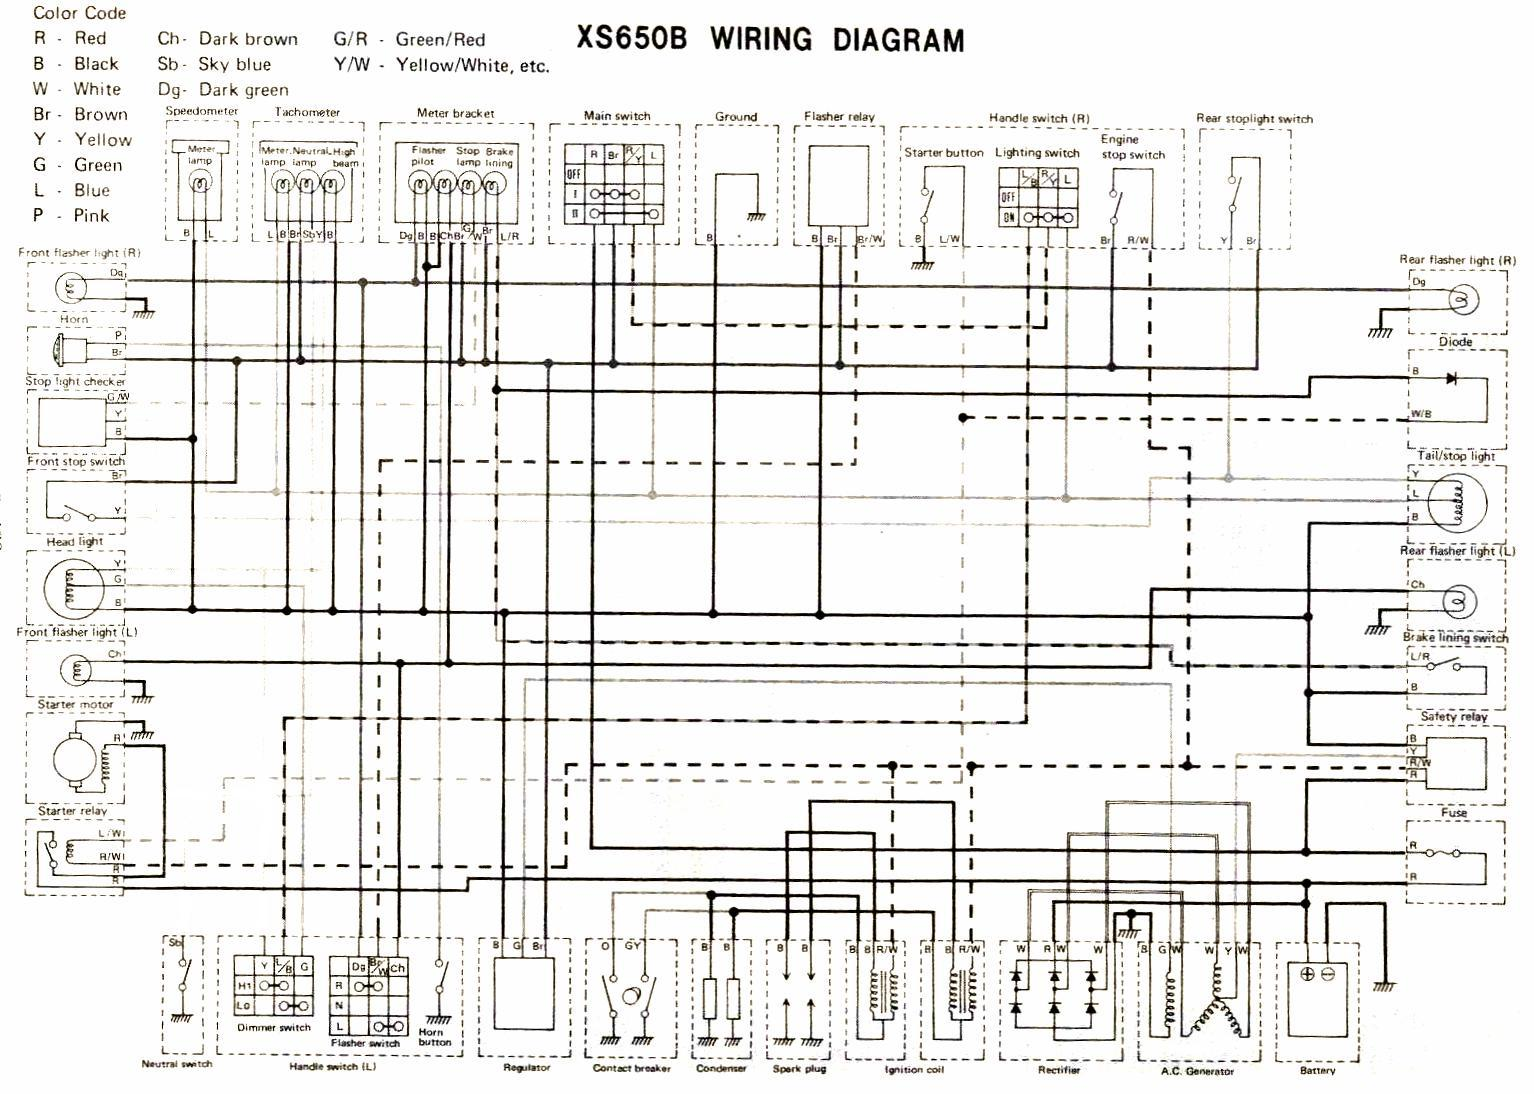 75XS650B wiring diagrams 1980 xs650 wiring diagram at n-0.co